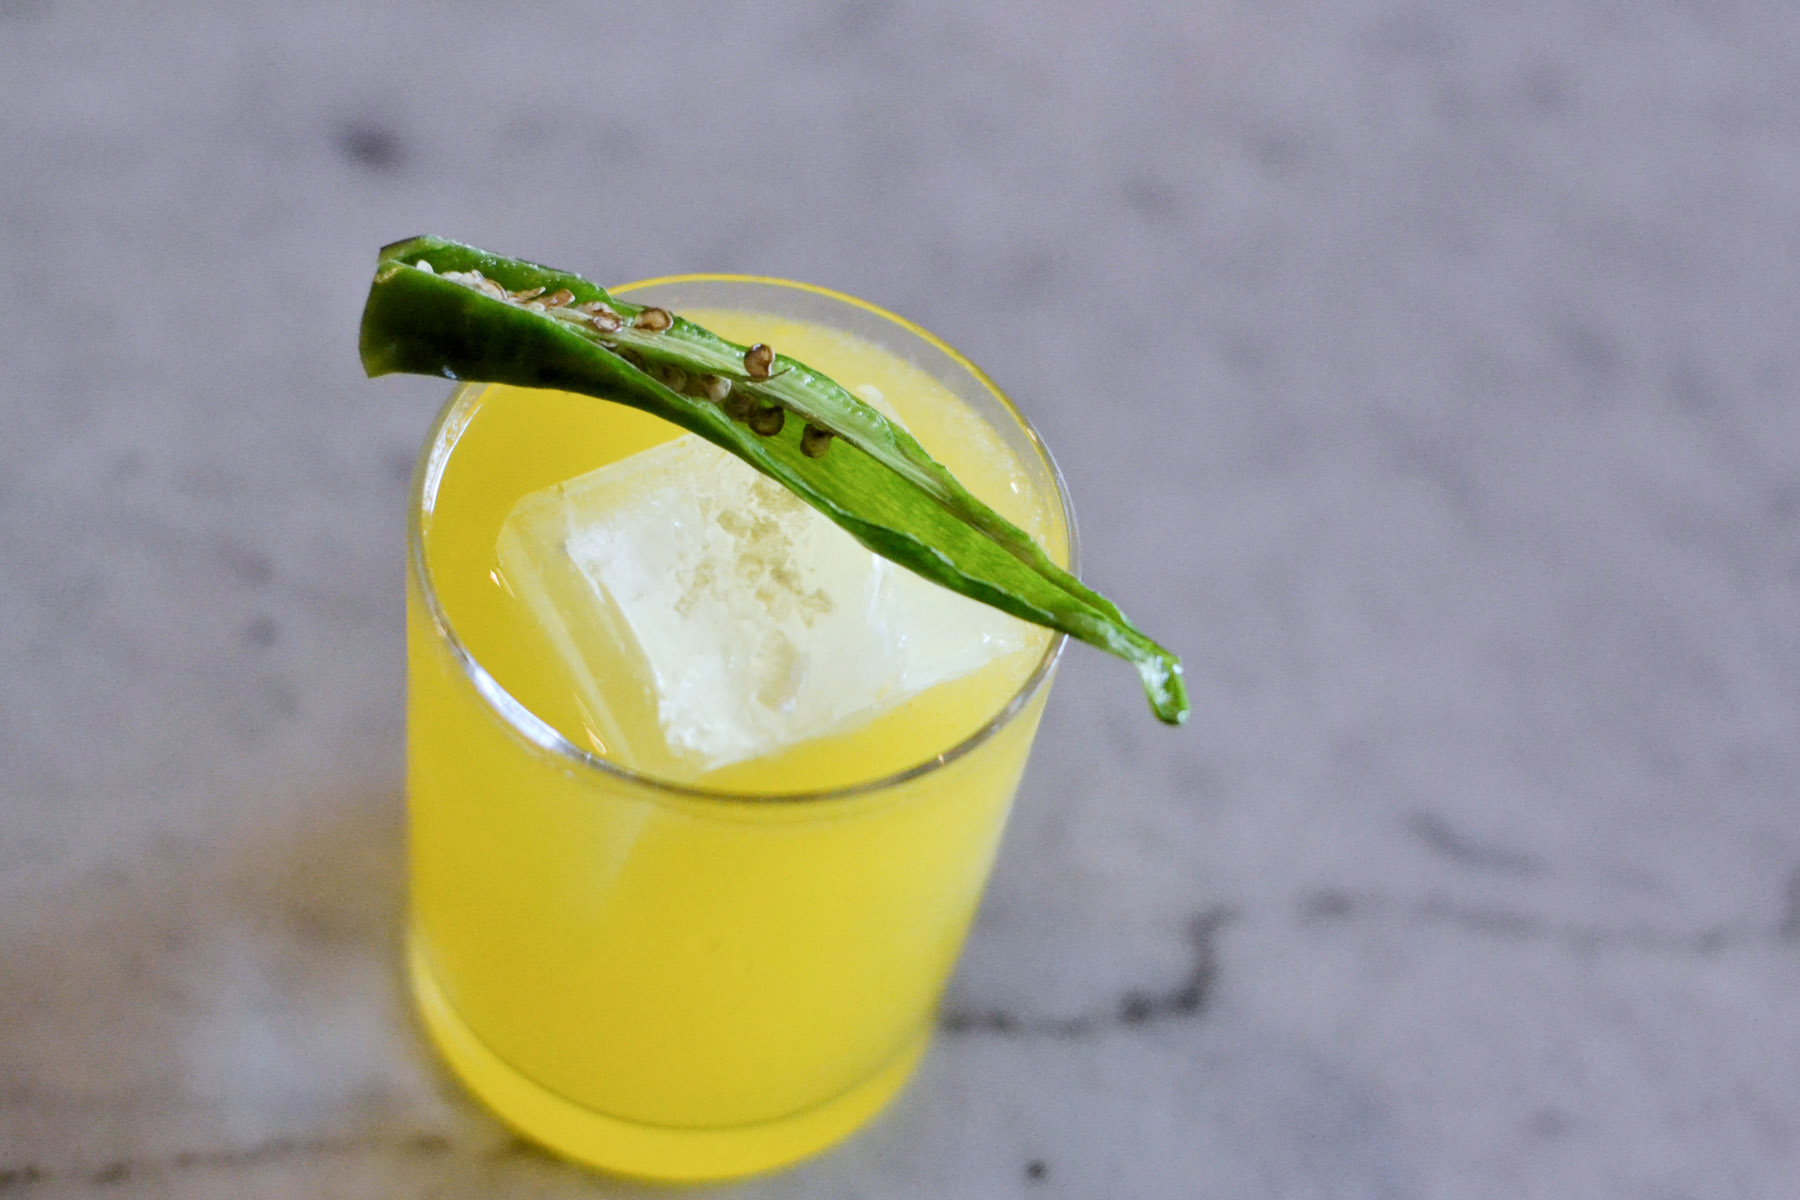 The #2 with yellow pepper, tequila, chartreuse, smoked salt, and chili bitters